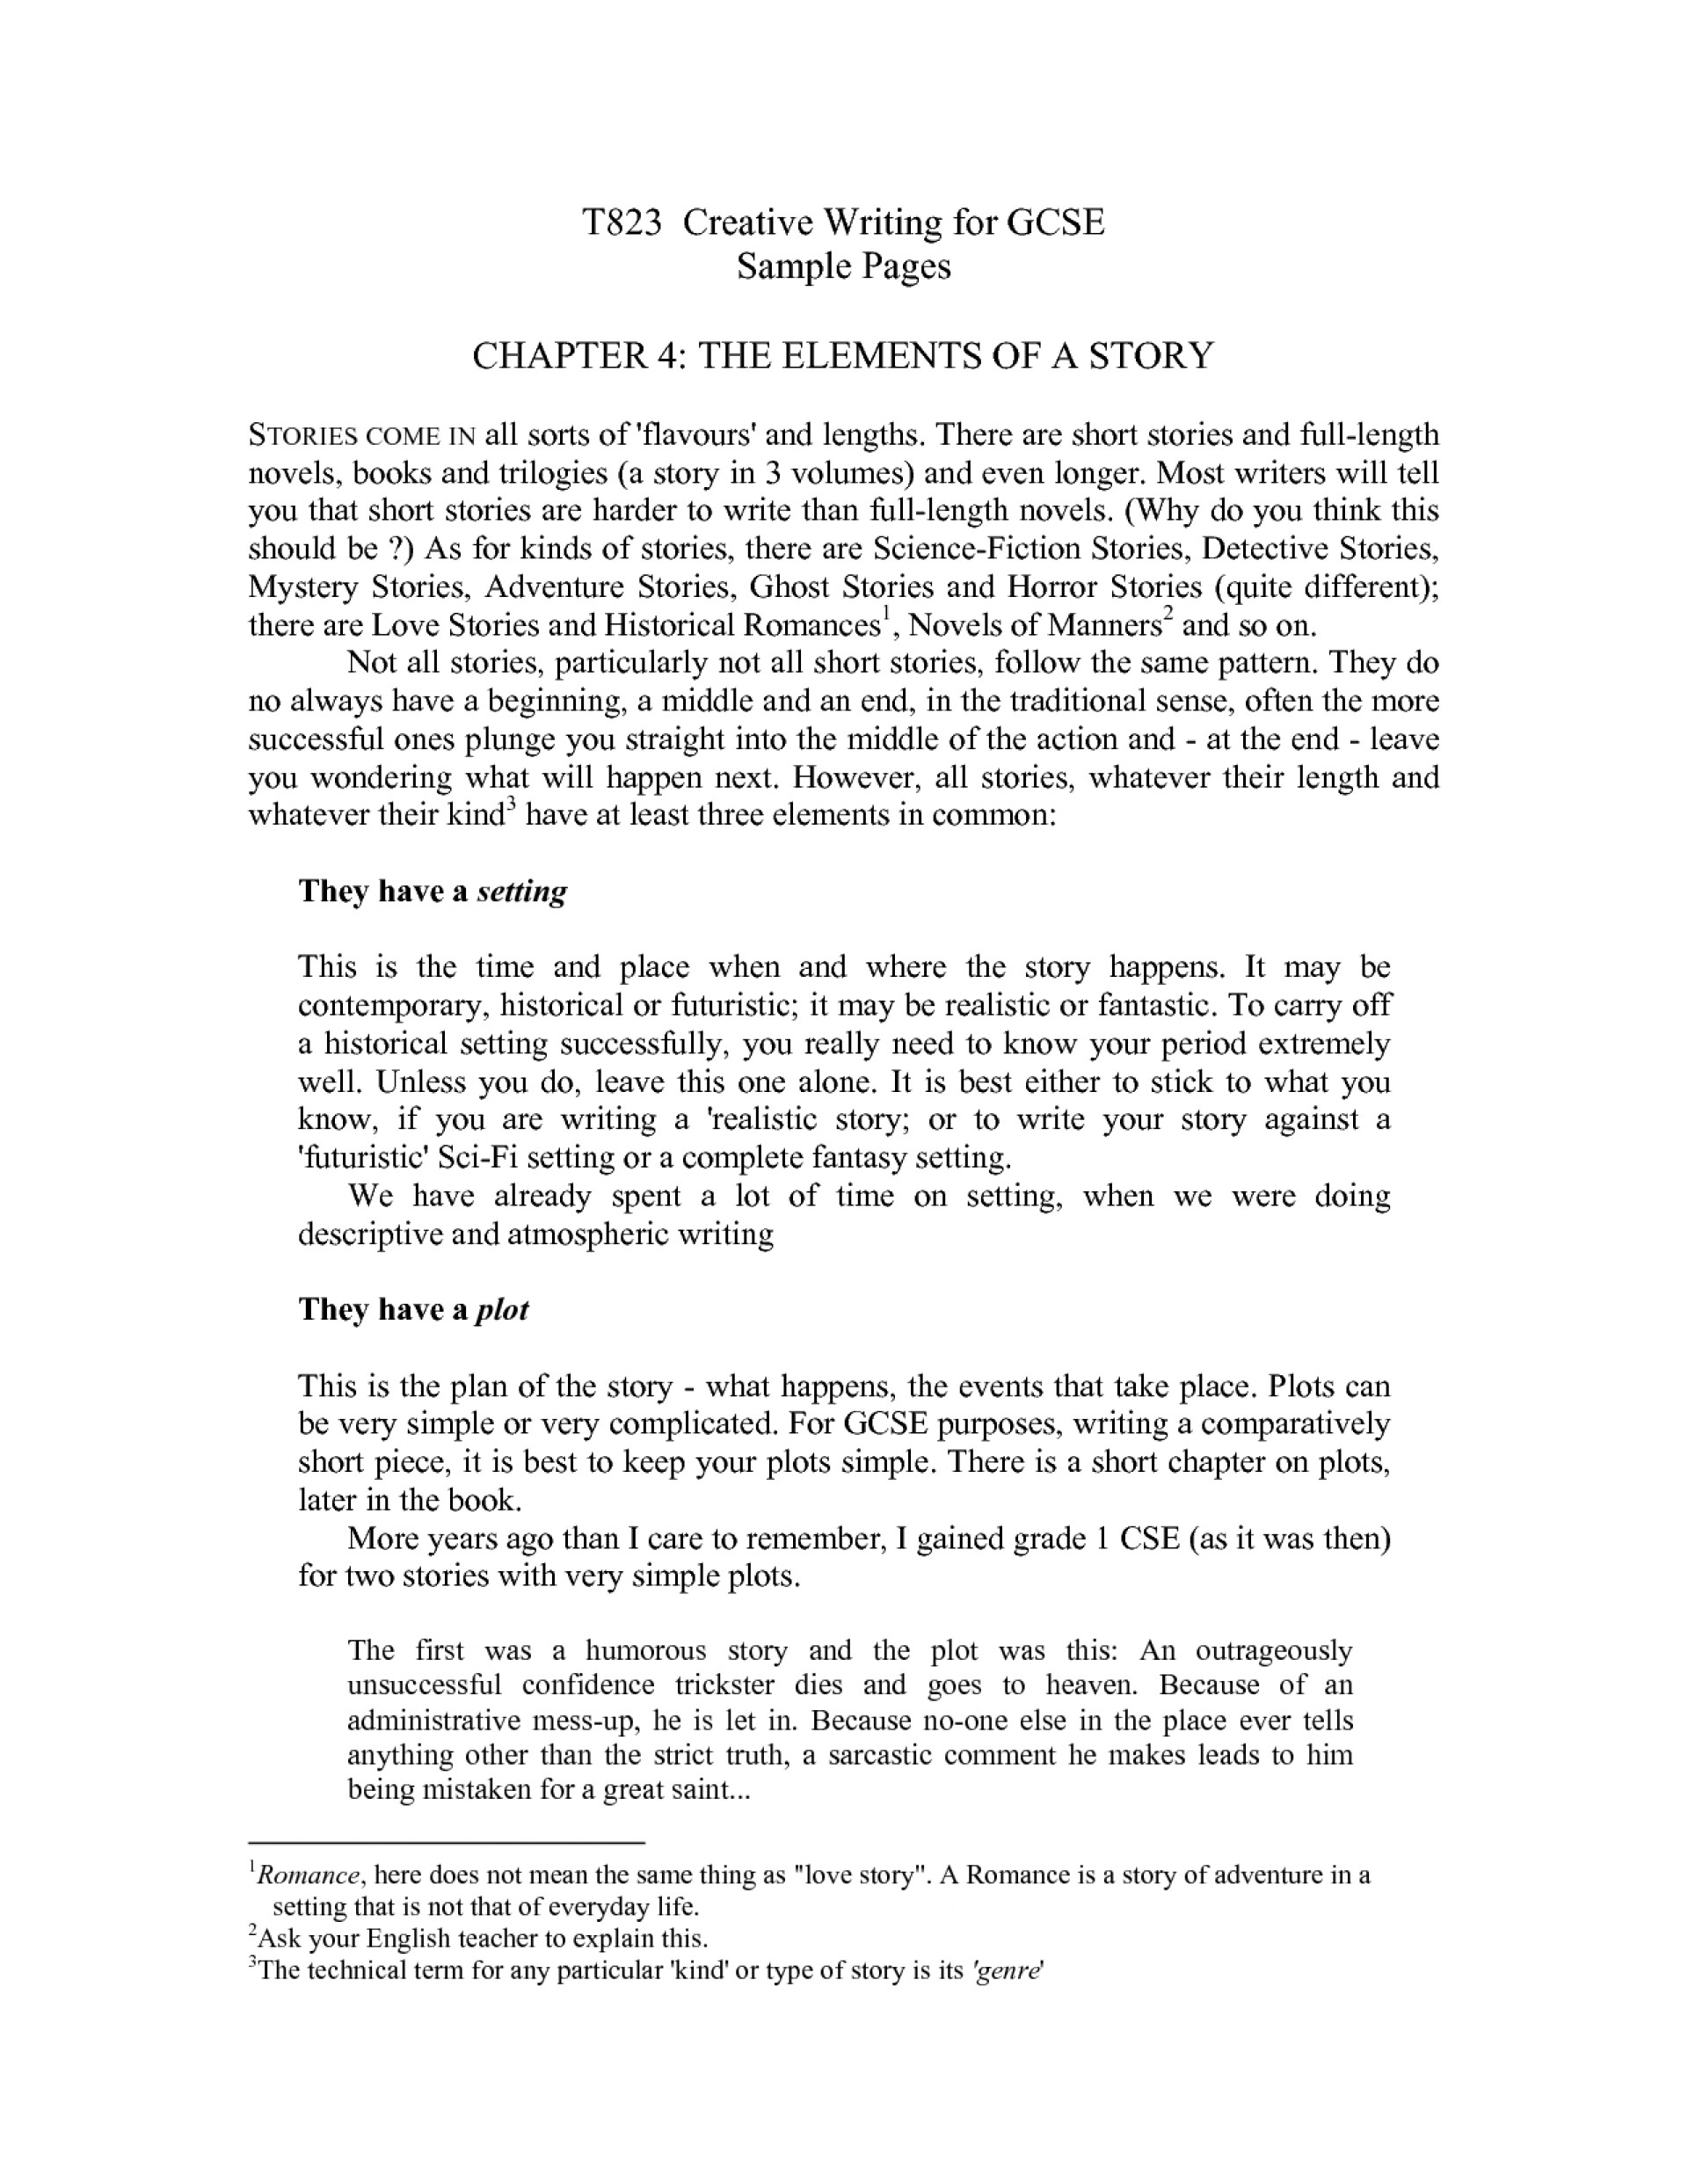 015 How To Write Personal Narrative Essay For College Fascinating A 1920